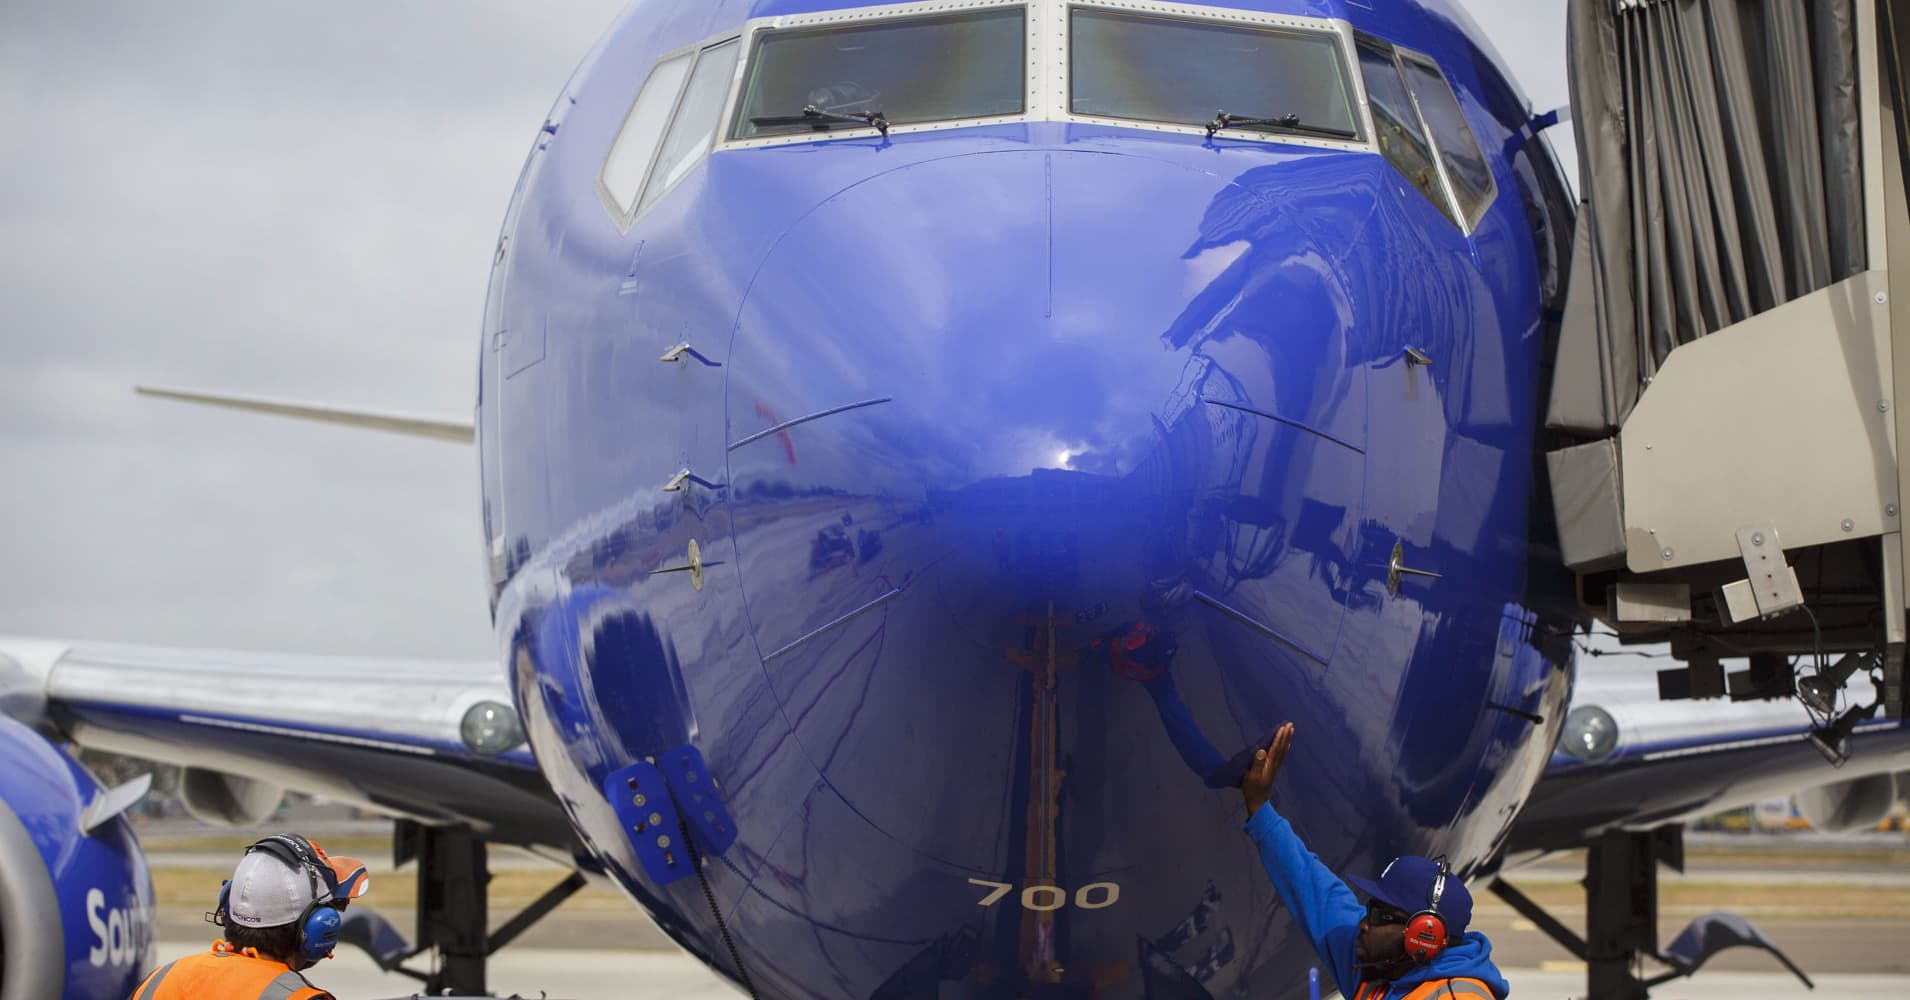 Southwest feuds with mechanics' union over 'unprecedented' number of out-of-service planes